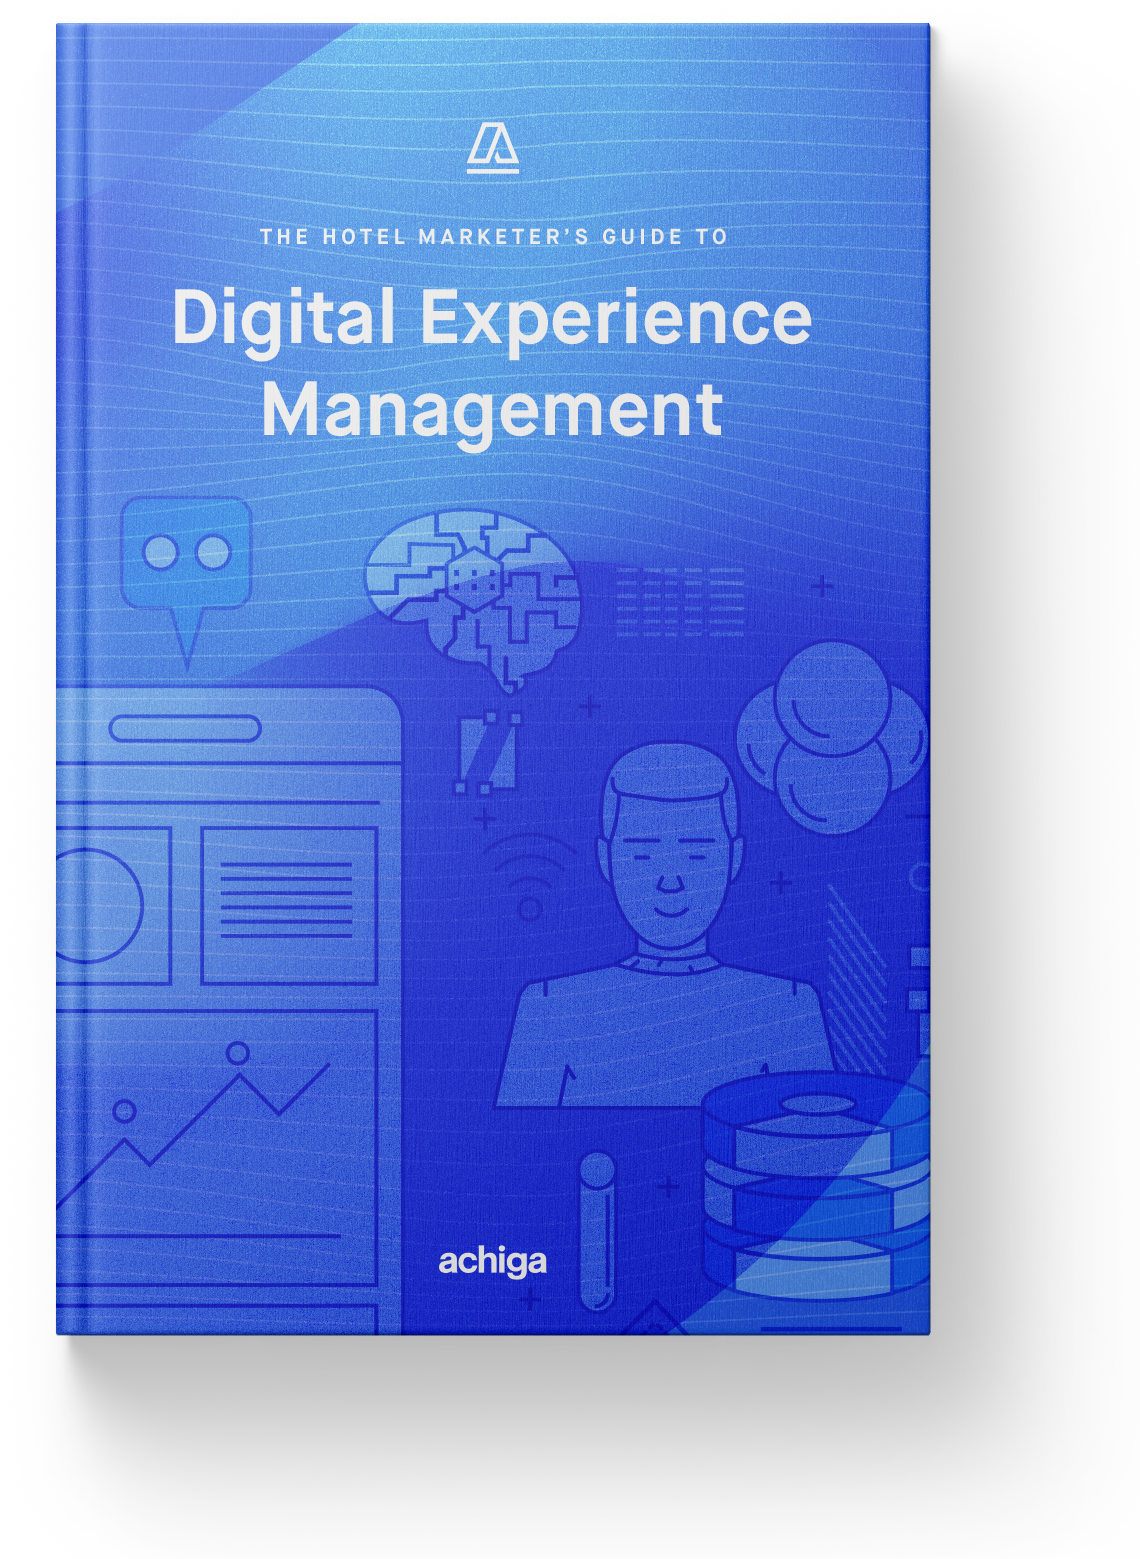 Digital Experience Management Guide